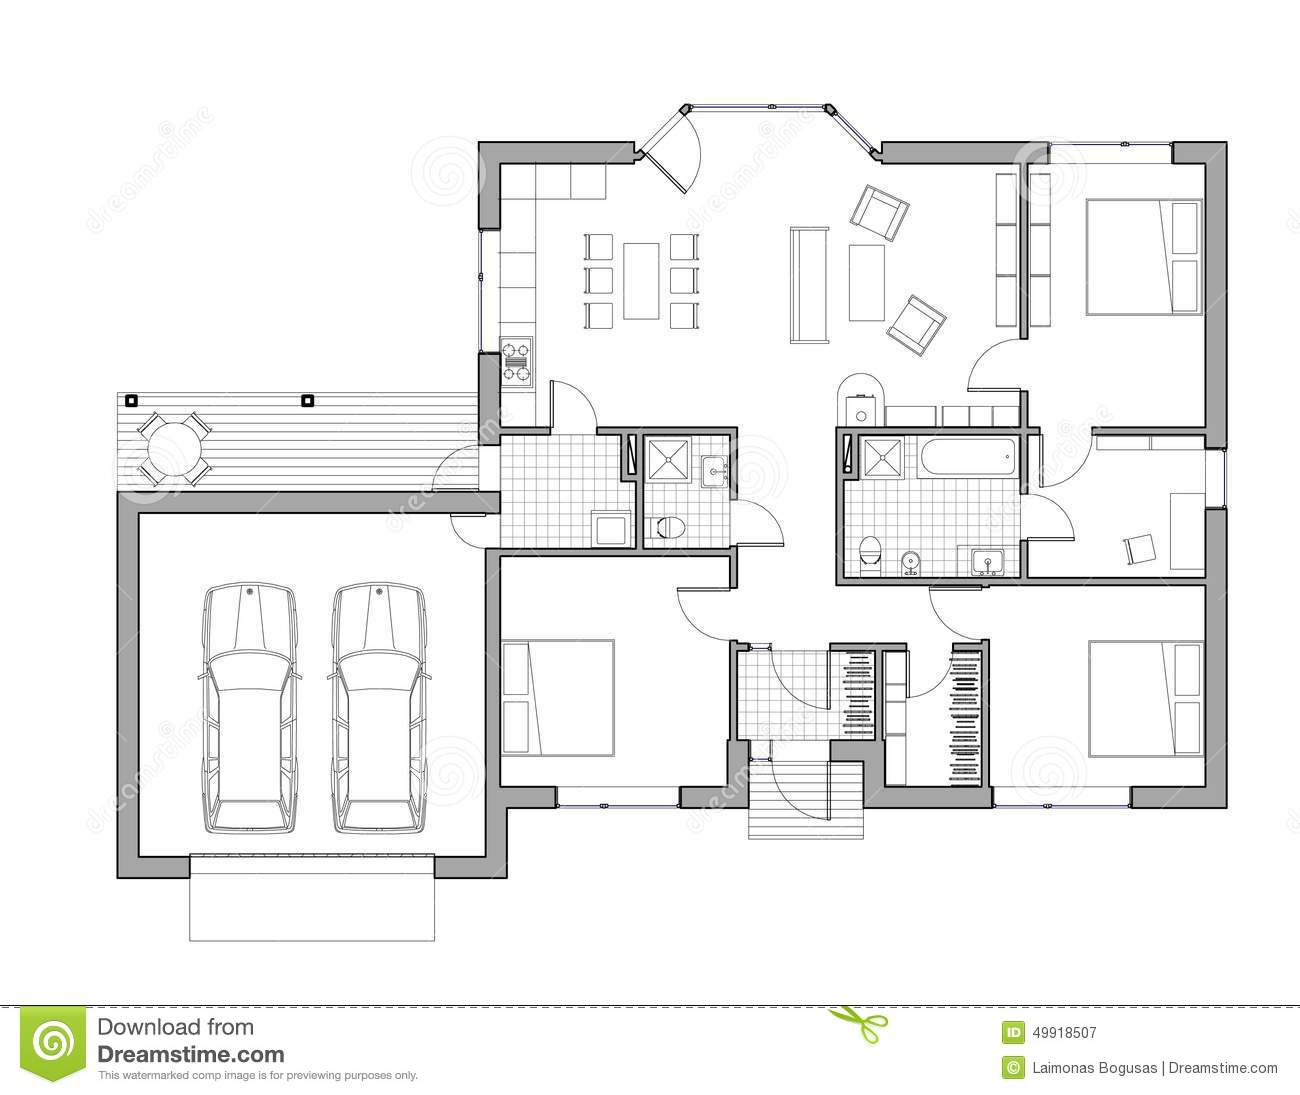 Dessin maison unifamiliale illustration stock image for Fare la mia planimetria